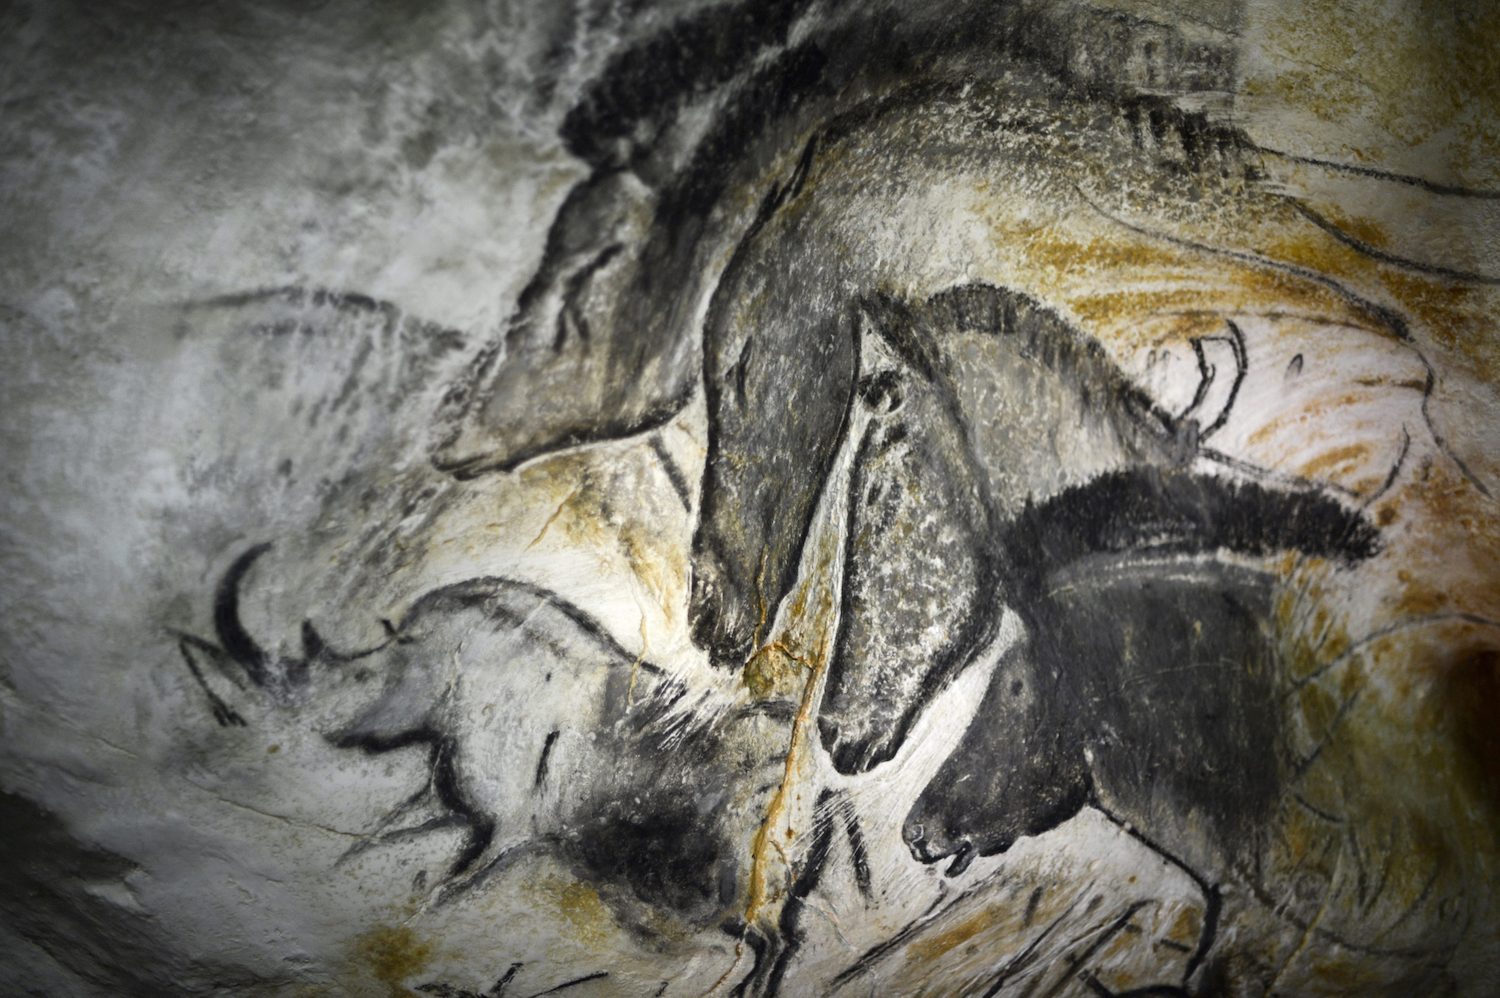 #MeetOurAncestors: Google's latest VR exhibit let's you discover humanity's earliest drawings